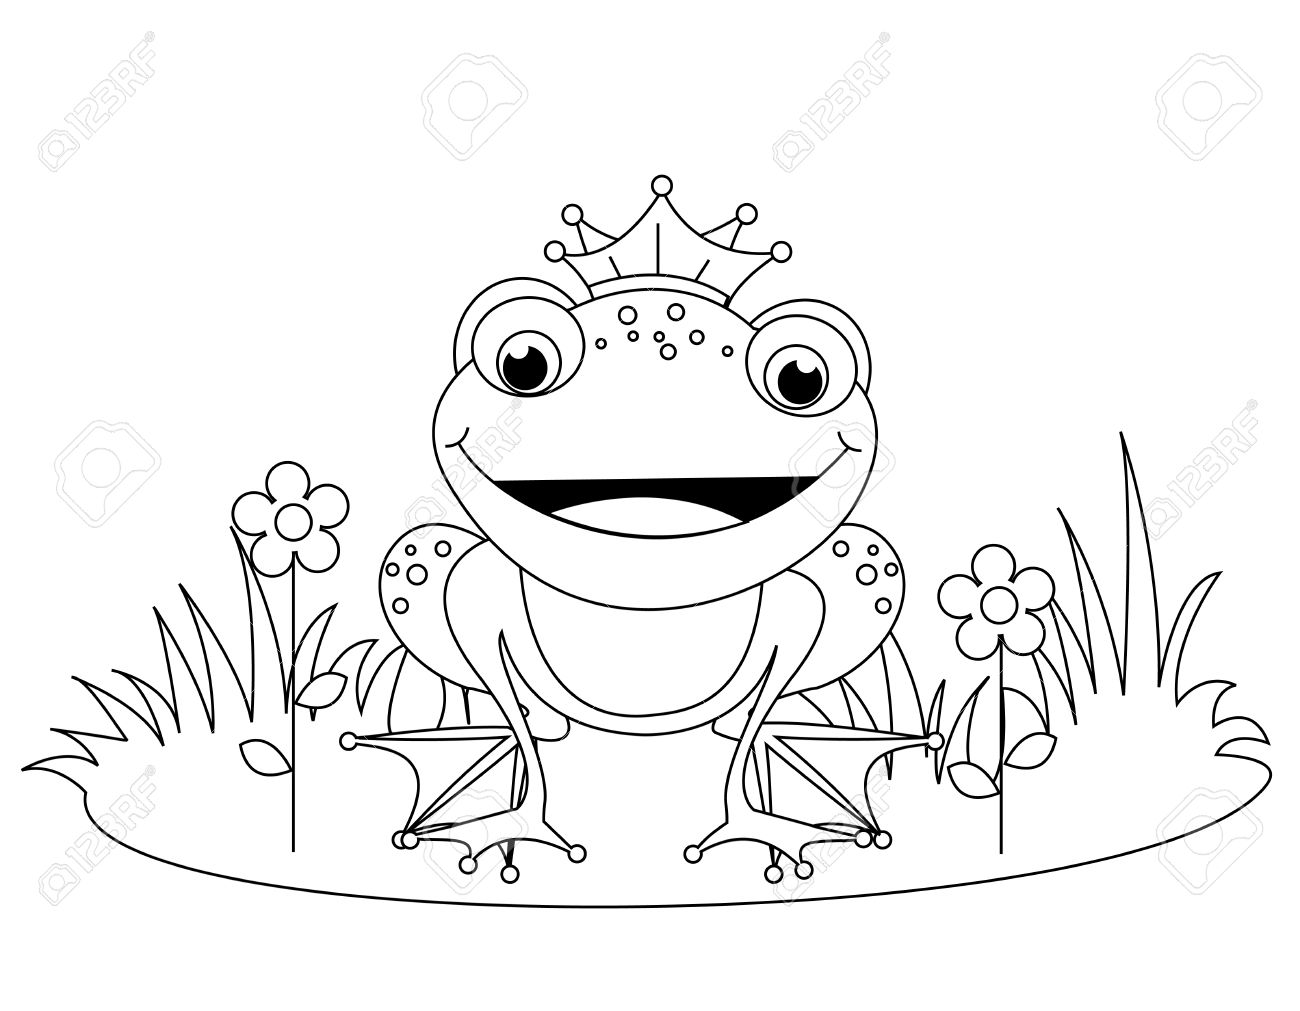 cute frog prince coloring book page for kindergarten kids royalty